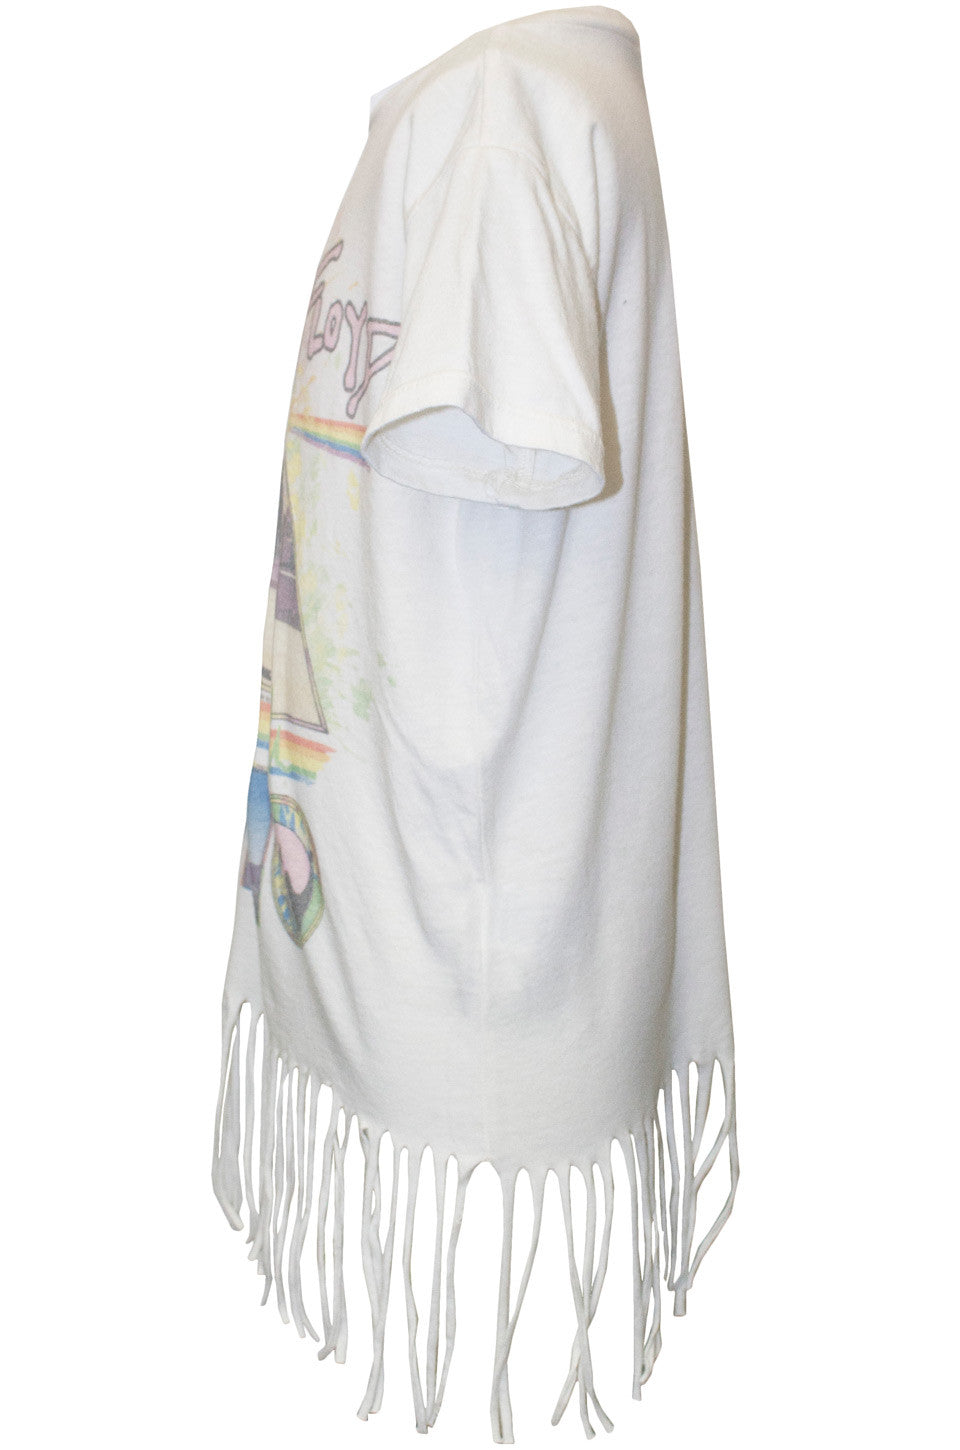 Snow Pink Floyd S/S Fringe Tee for Girls - Lauren Moshi - 3